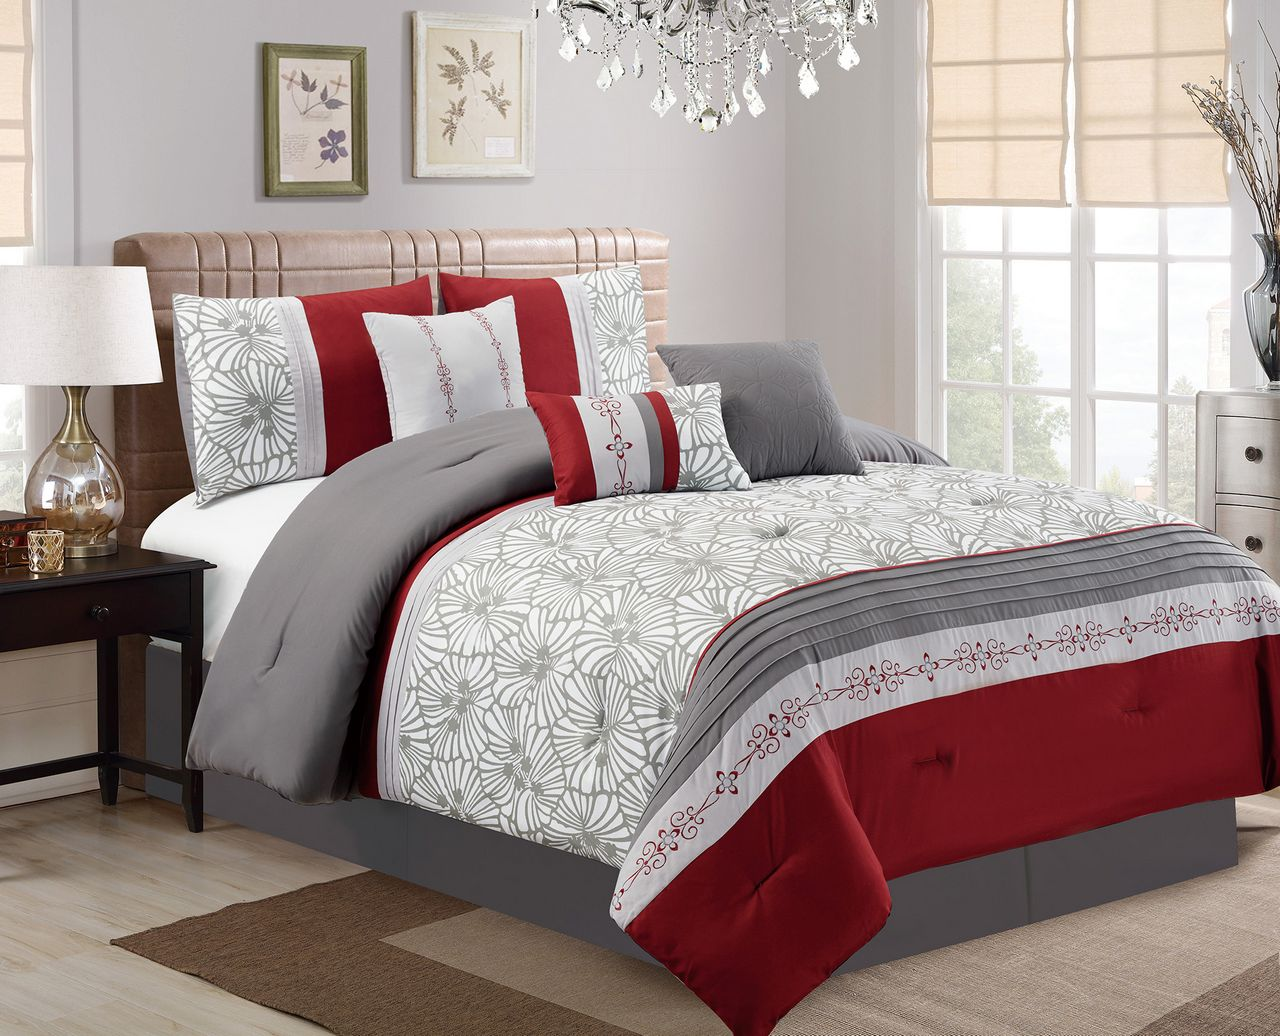 king set decor bedding best queen ivory designer regard comforter design croscill decorating california with bedroom to monroe sets pertaining beautiful